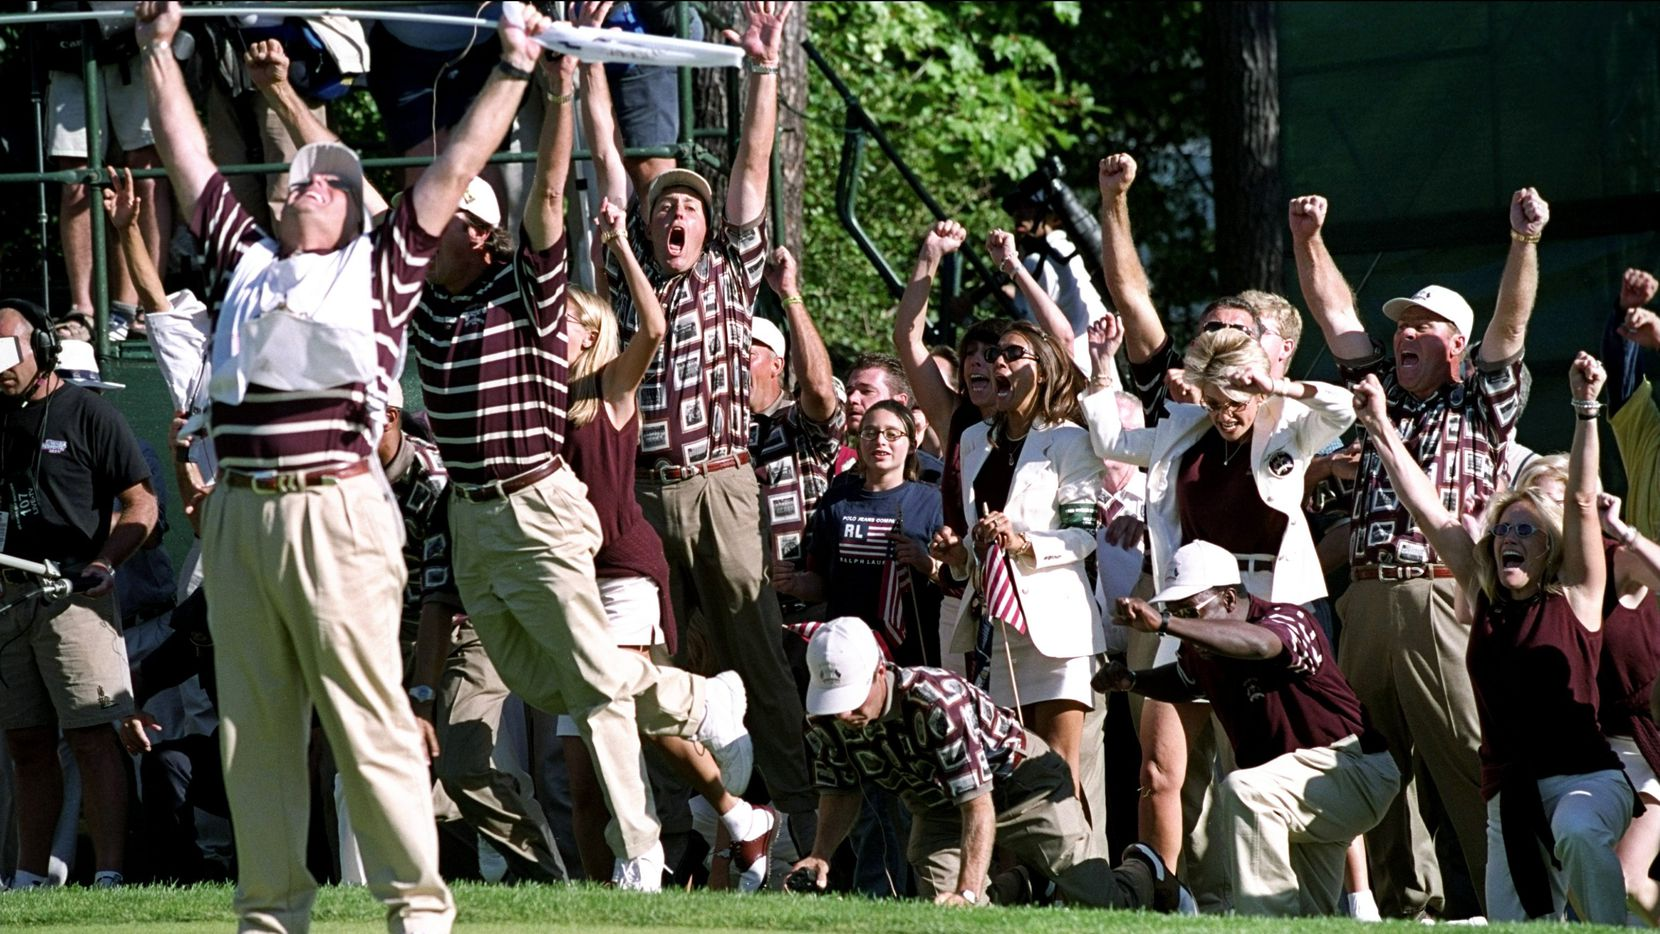 ORG XMIT: *S0424281493* 26 Sep 1999:  The American players and wives celebrate after Justin Leonard of the USA sinks a long birdie putt on the 17th green during the final day of the 33rd Ryder Cup at Brookline Country Club, Boston, Massachusetts, USA. \ Mandatory Credit: Craig Jones /Allsport